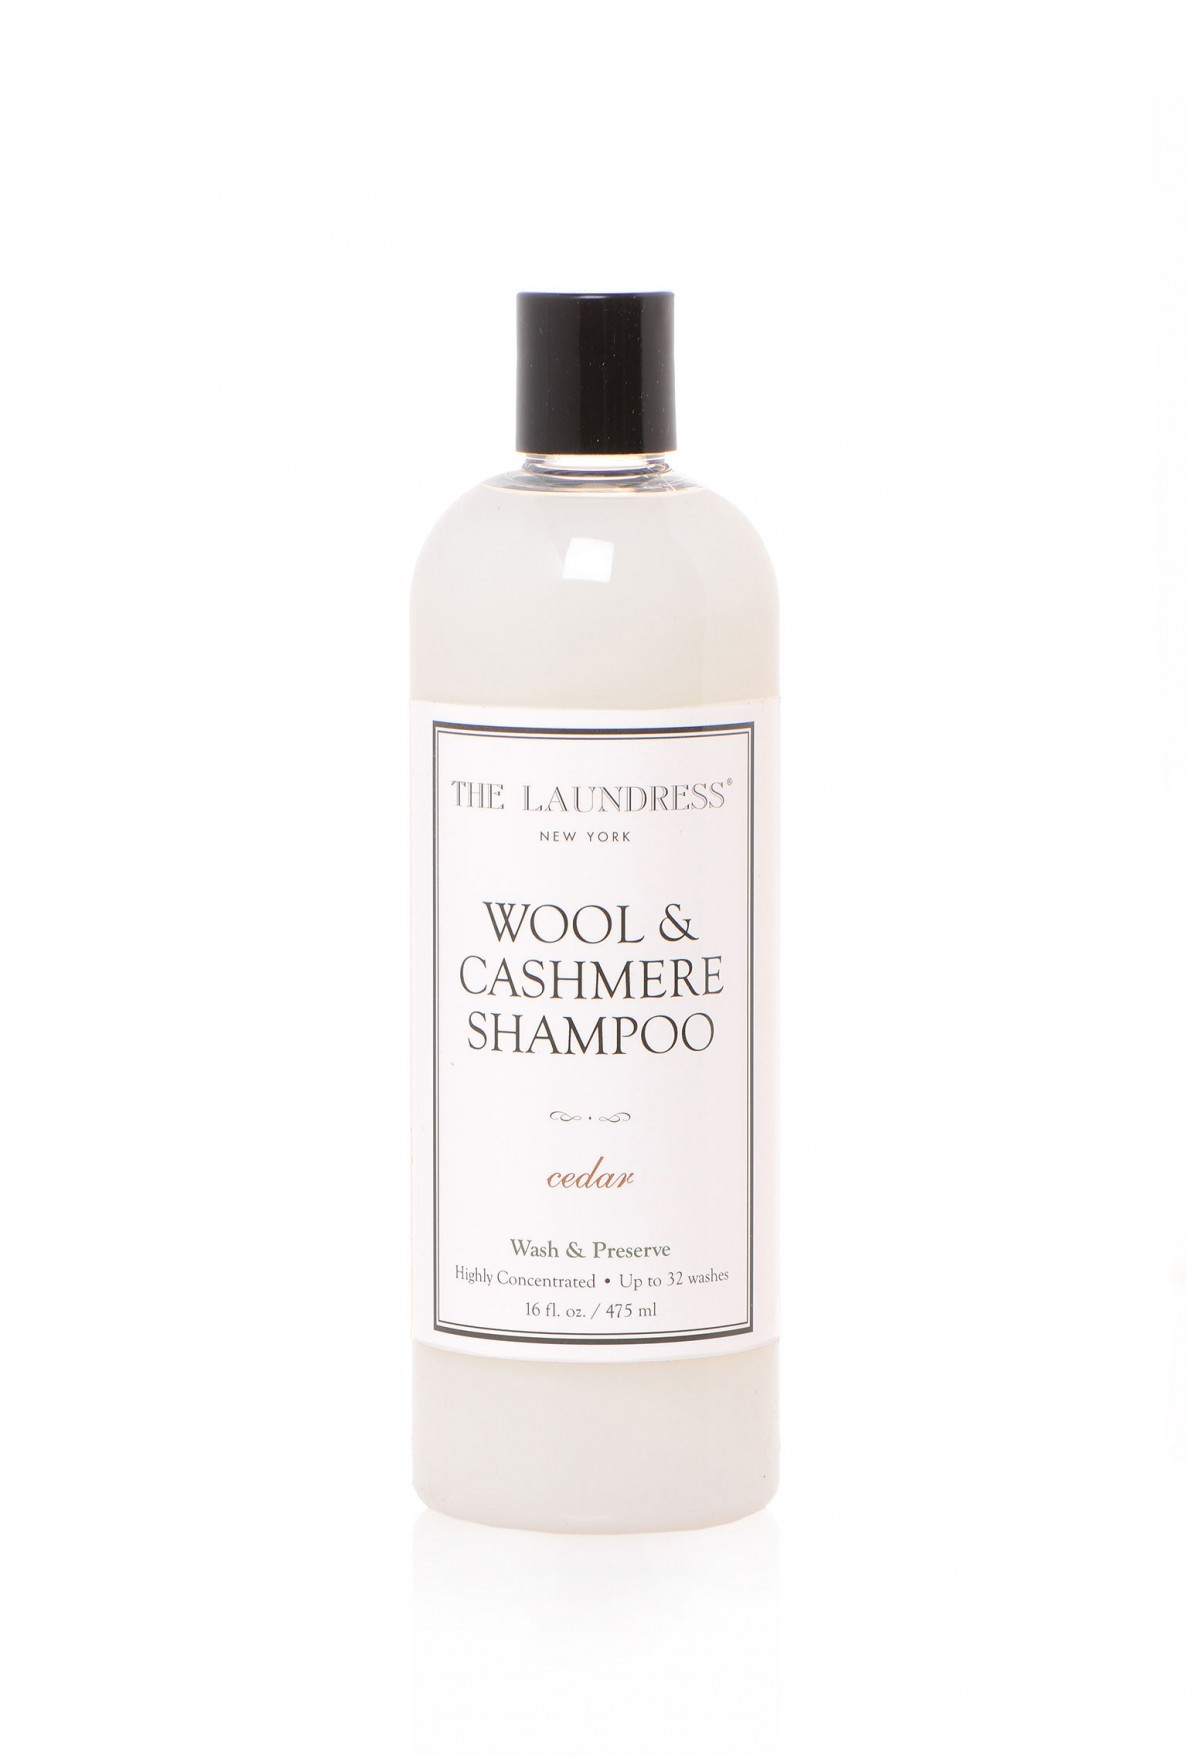 WOOL & CASHMERE SHAMPOO 475 ML